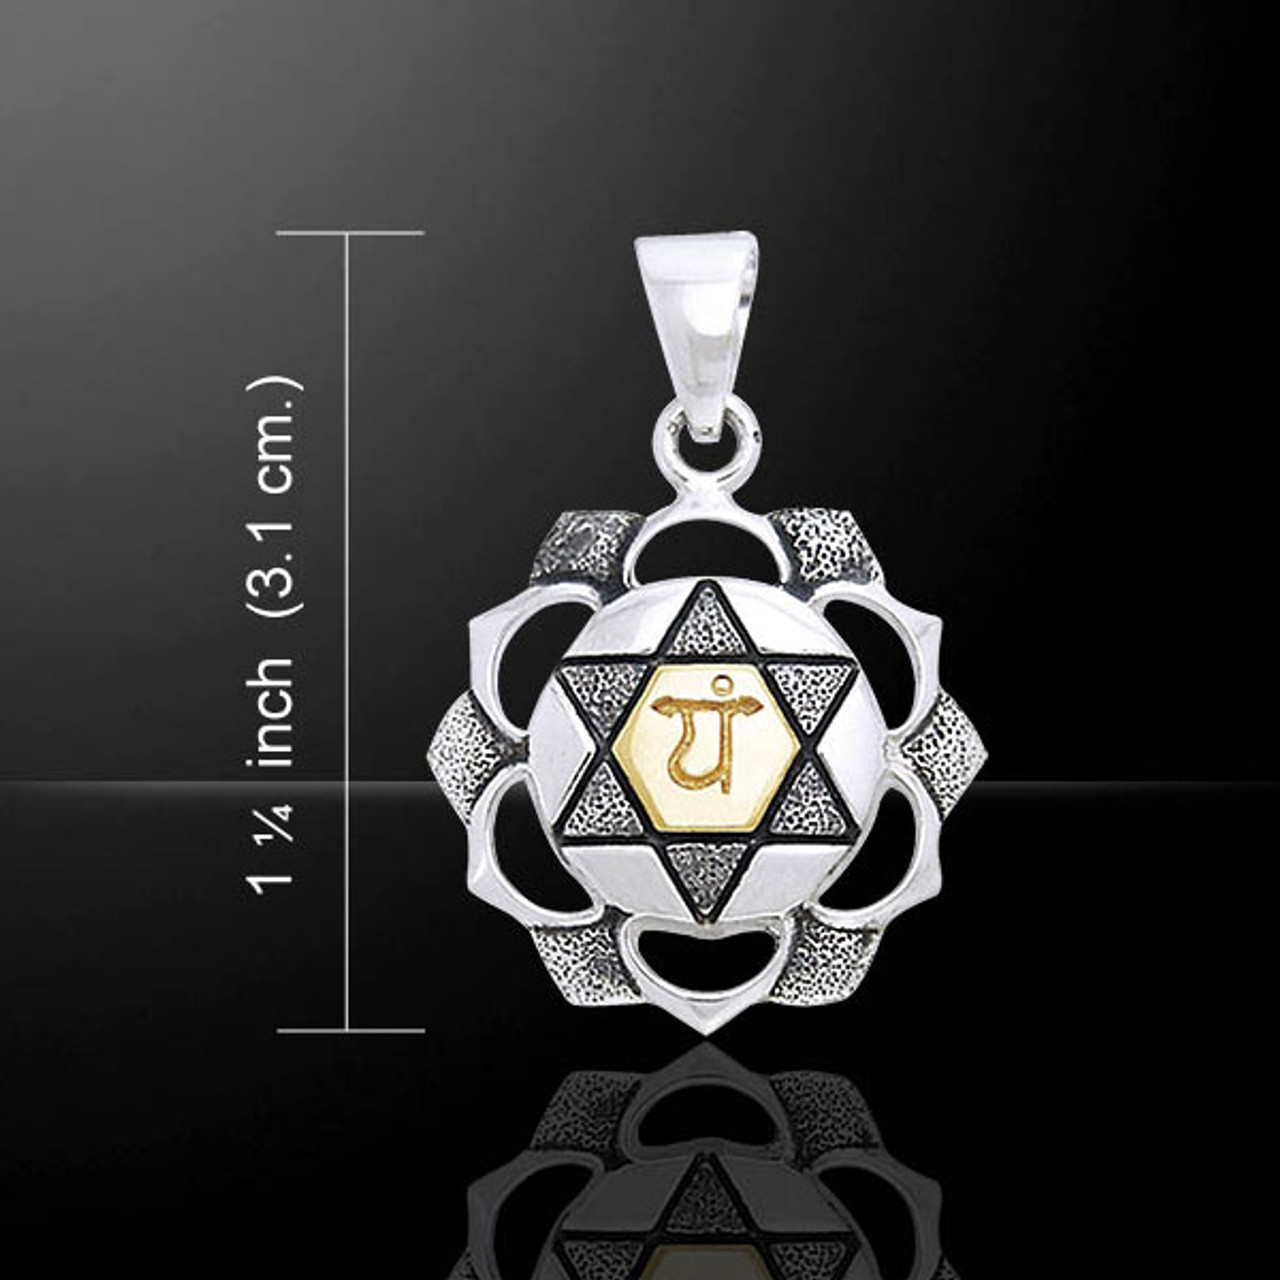 Heart Chakra Pendant (Love) - Sterling Silver & Gold